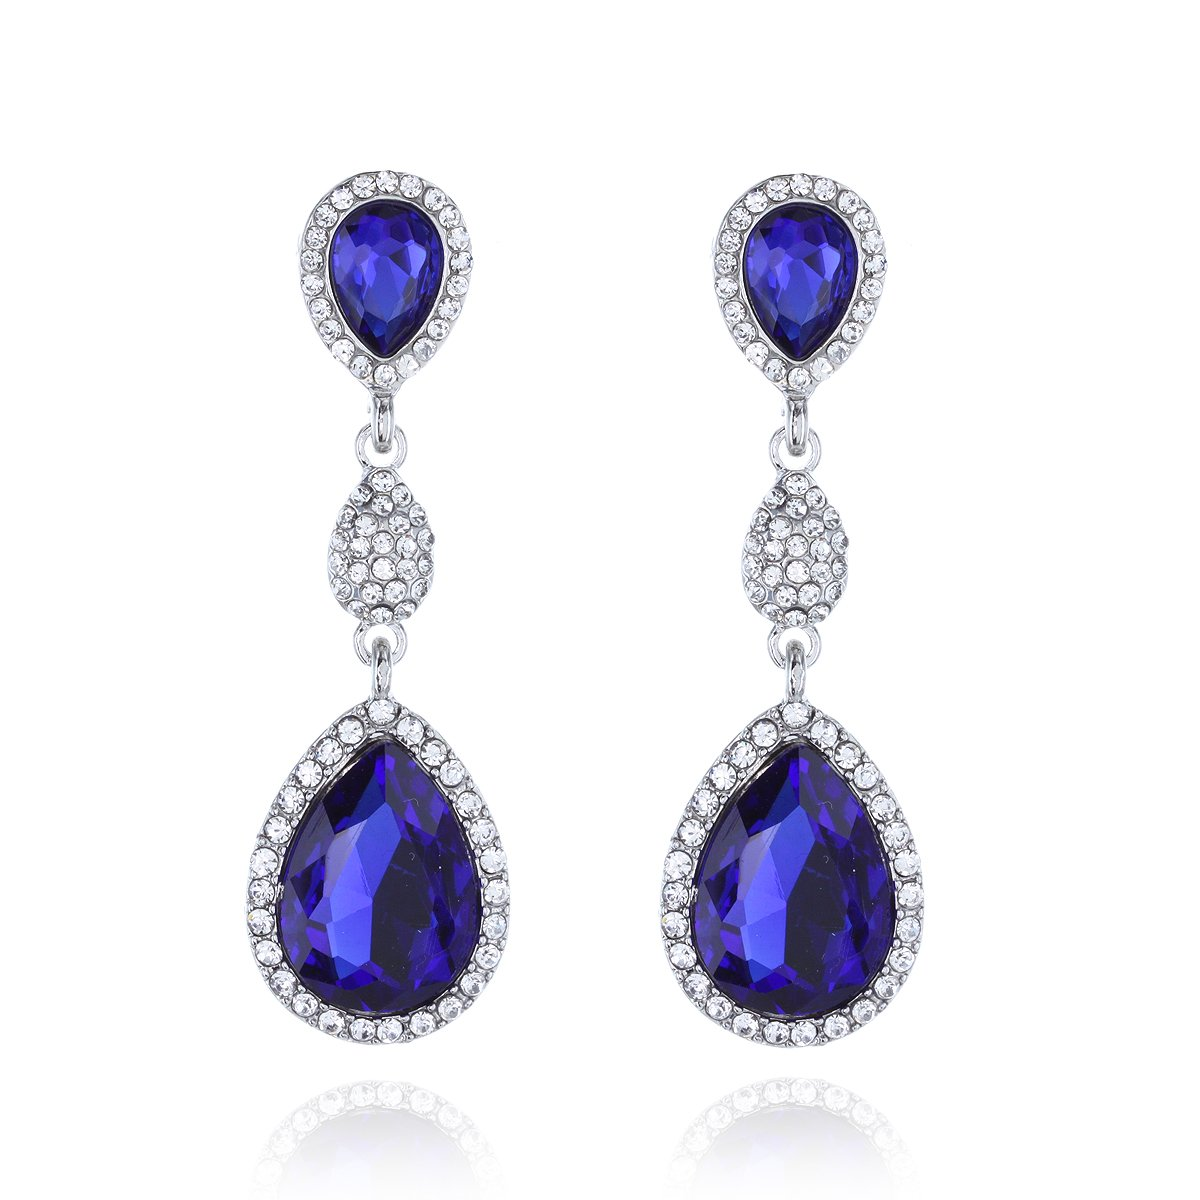 Bridal statement Jewelry Halo Tear Drop Dangle Austrian Crystal Accented Earrings in Royal Blue